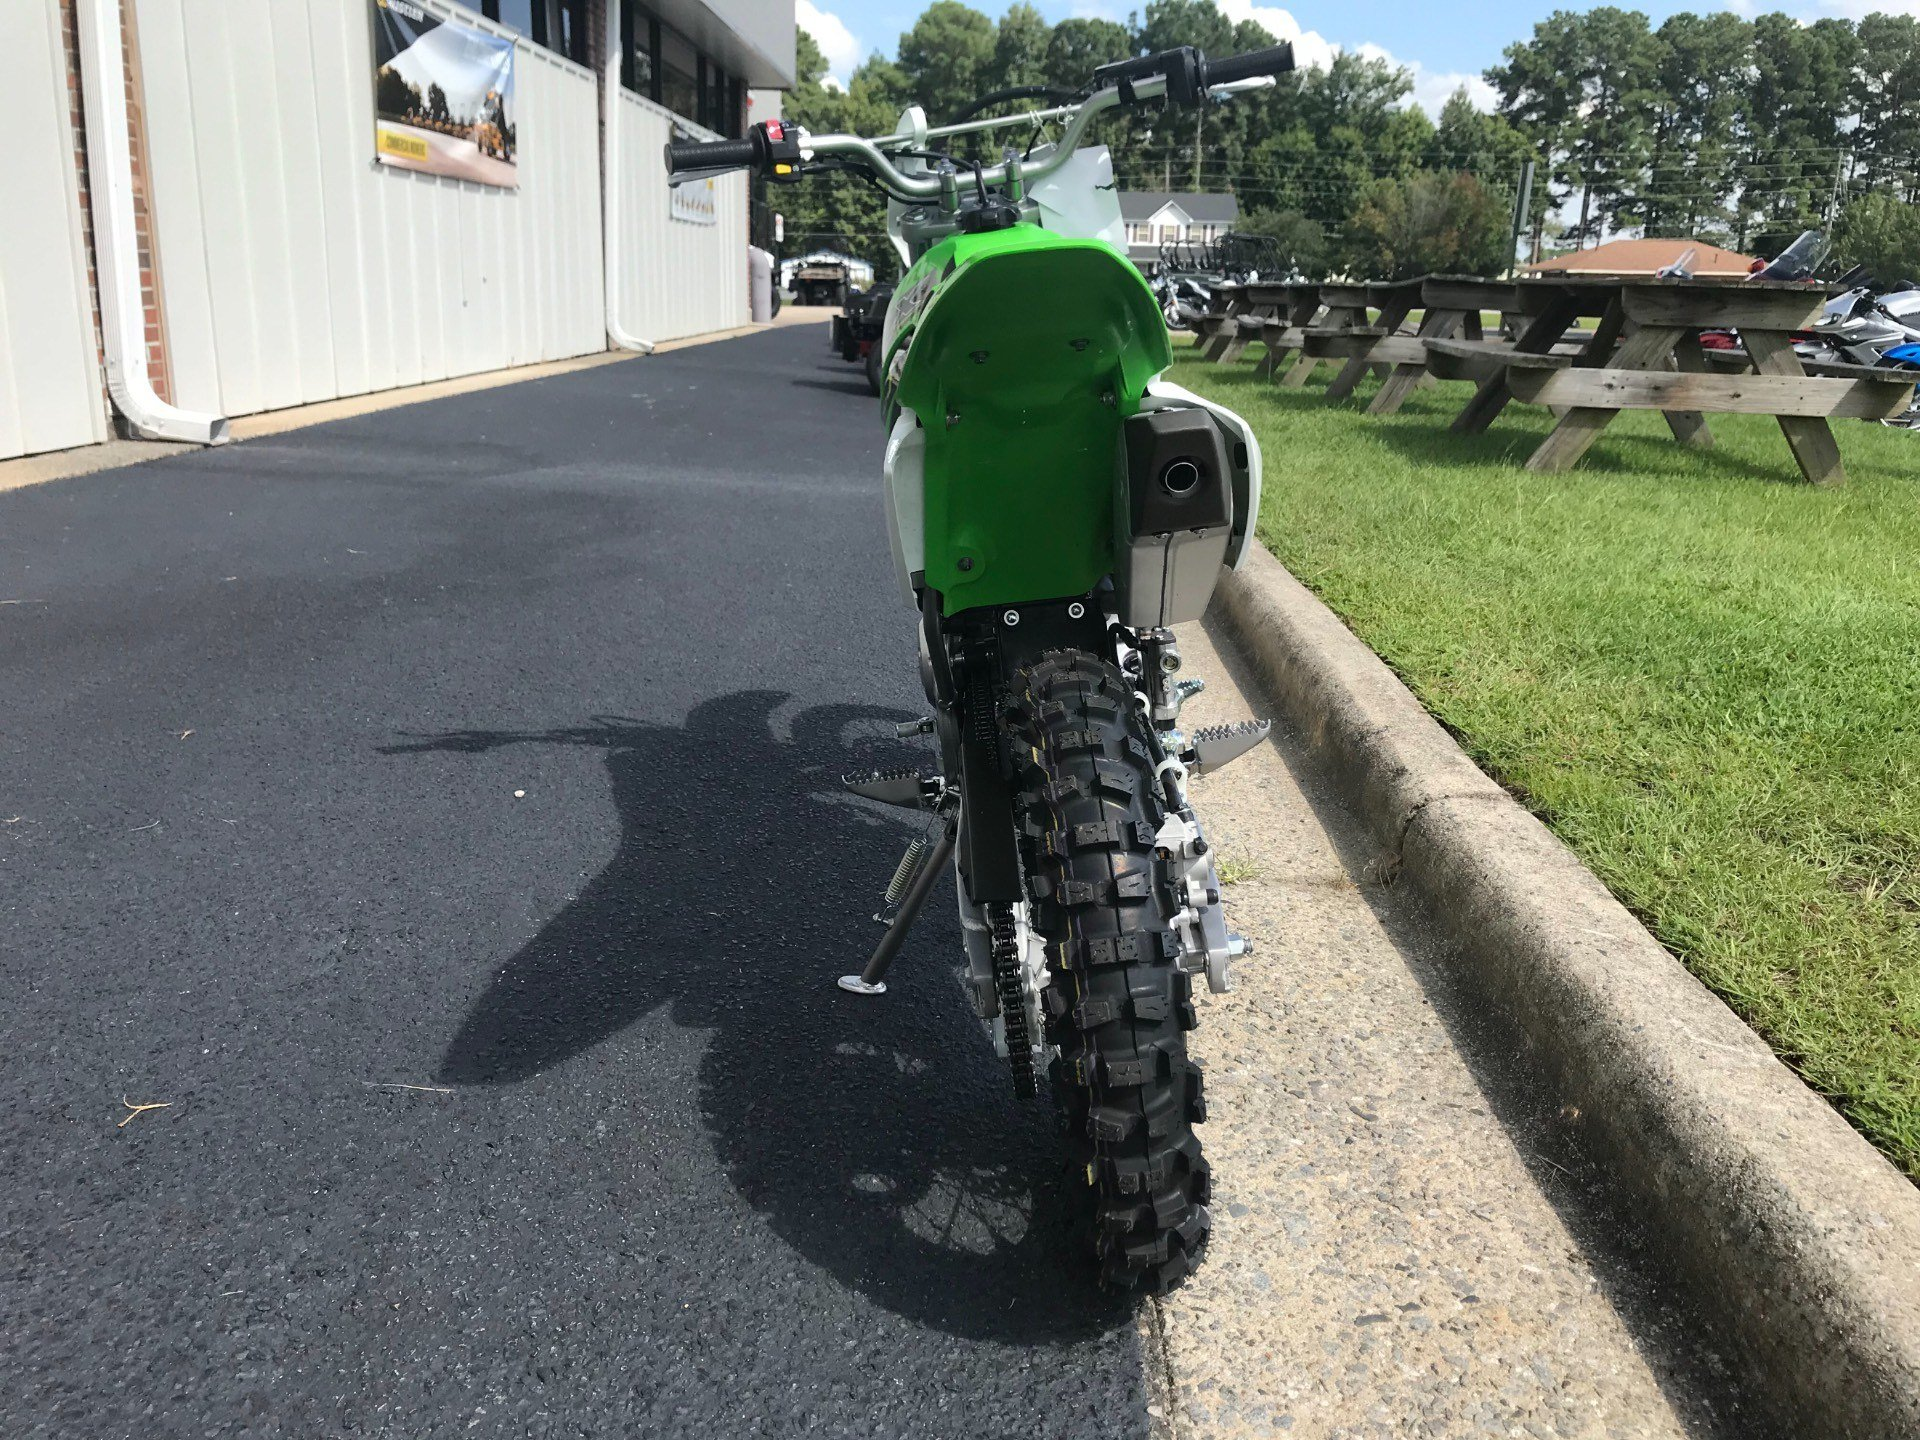 2019 Kawasaki KLX 140 in Greenville, North Carolina - Photo 13